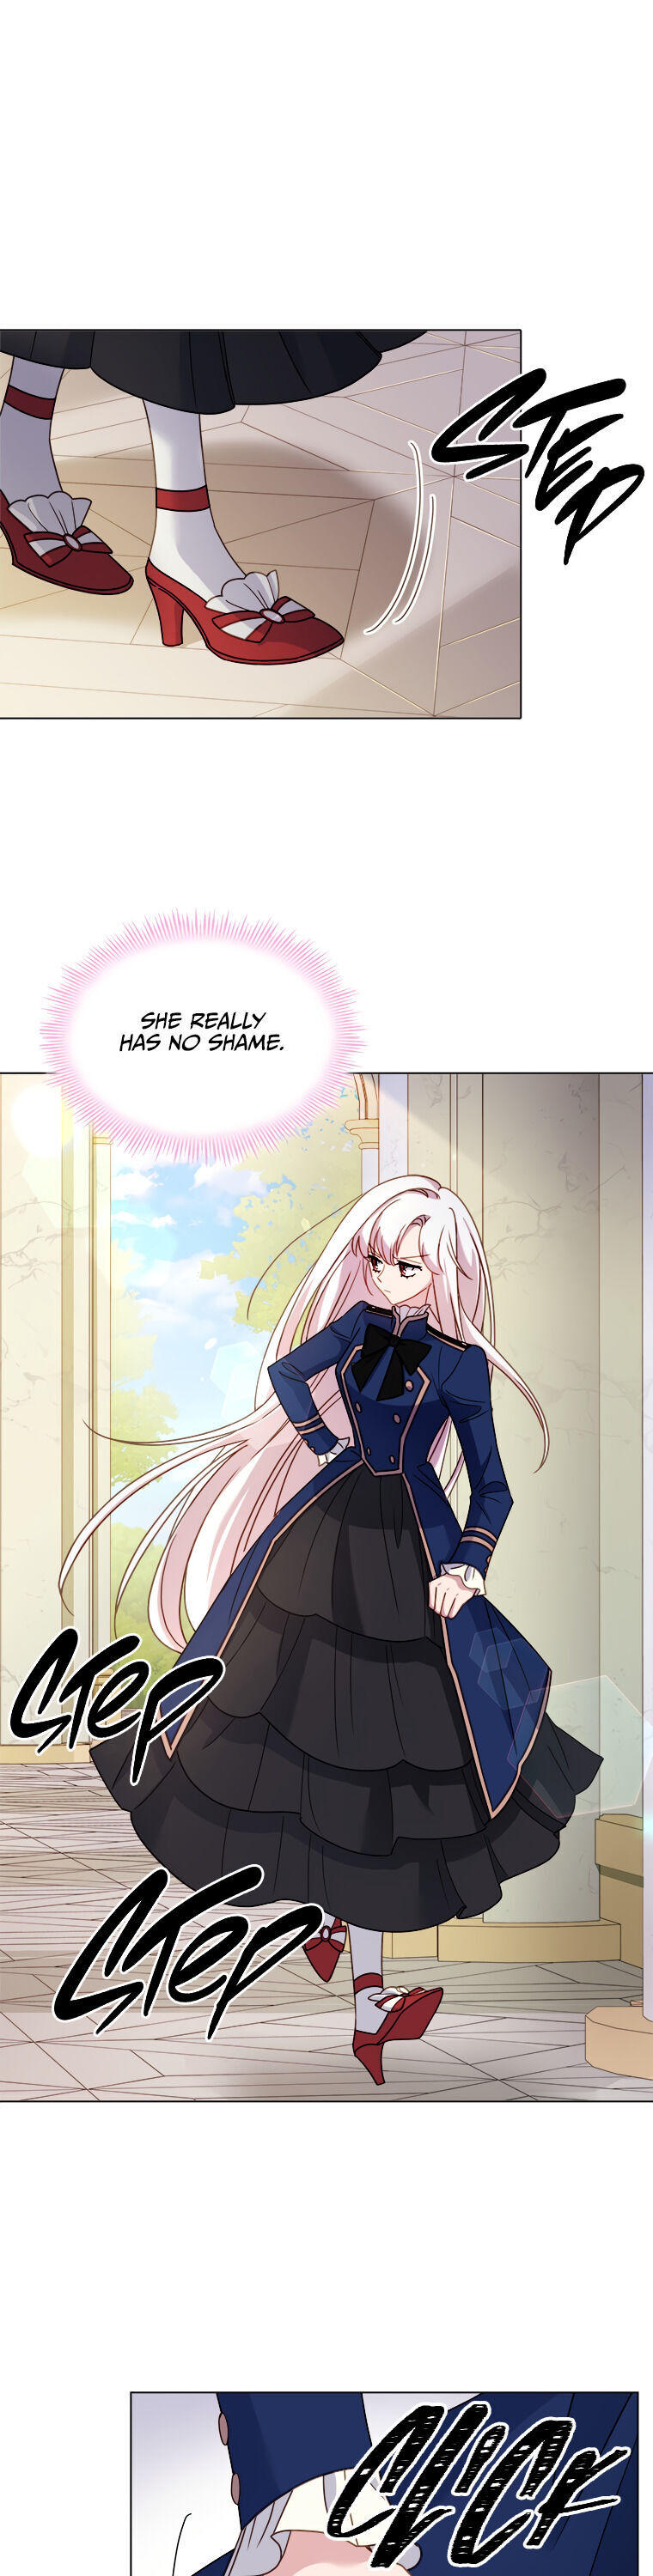 The Lady Wants To Rest (Promo) Chapter 39 page 21 - Mangakakalots.com